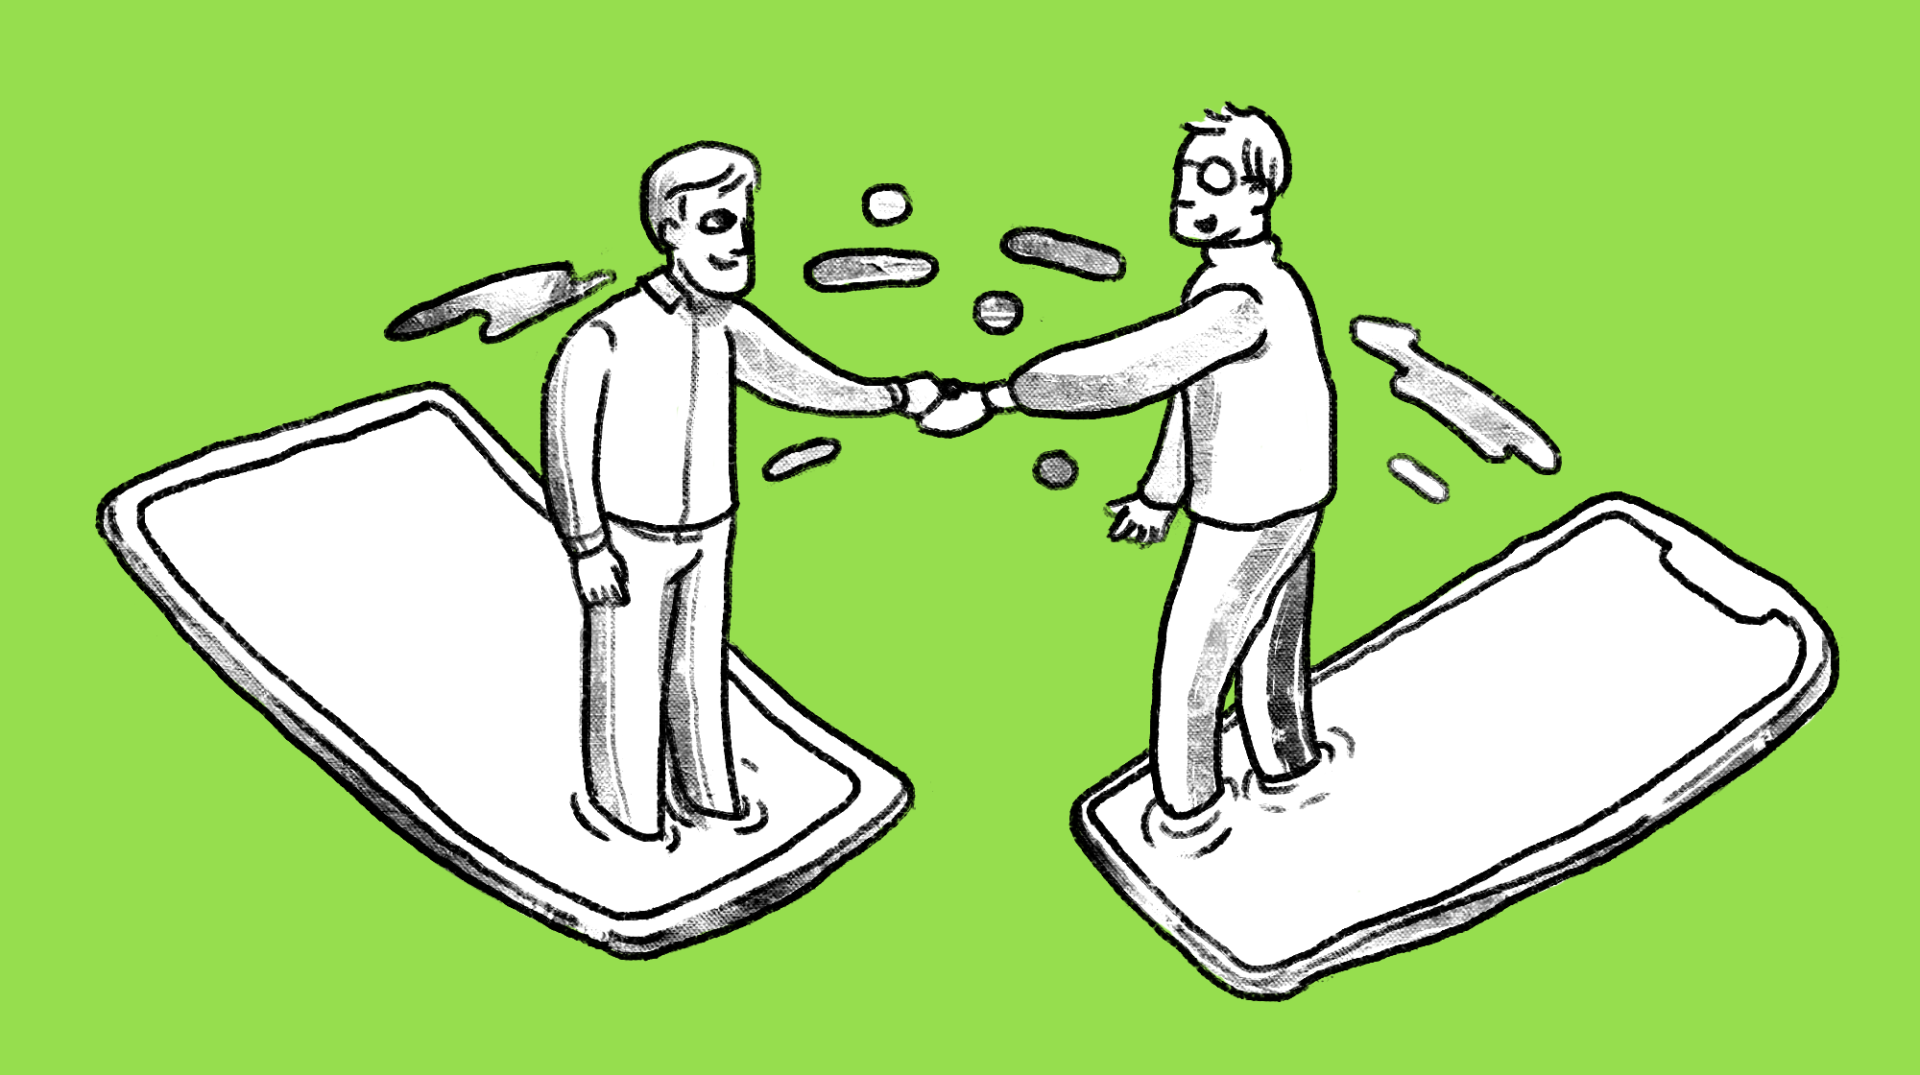 two-men-shaking-hands-b2b-lead-nurturing-tips-for-HubSpot-newbies-main-image